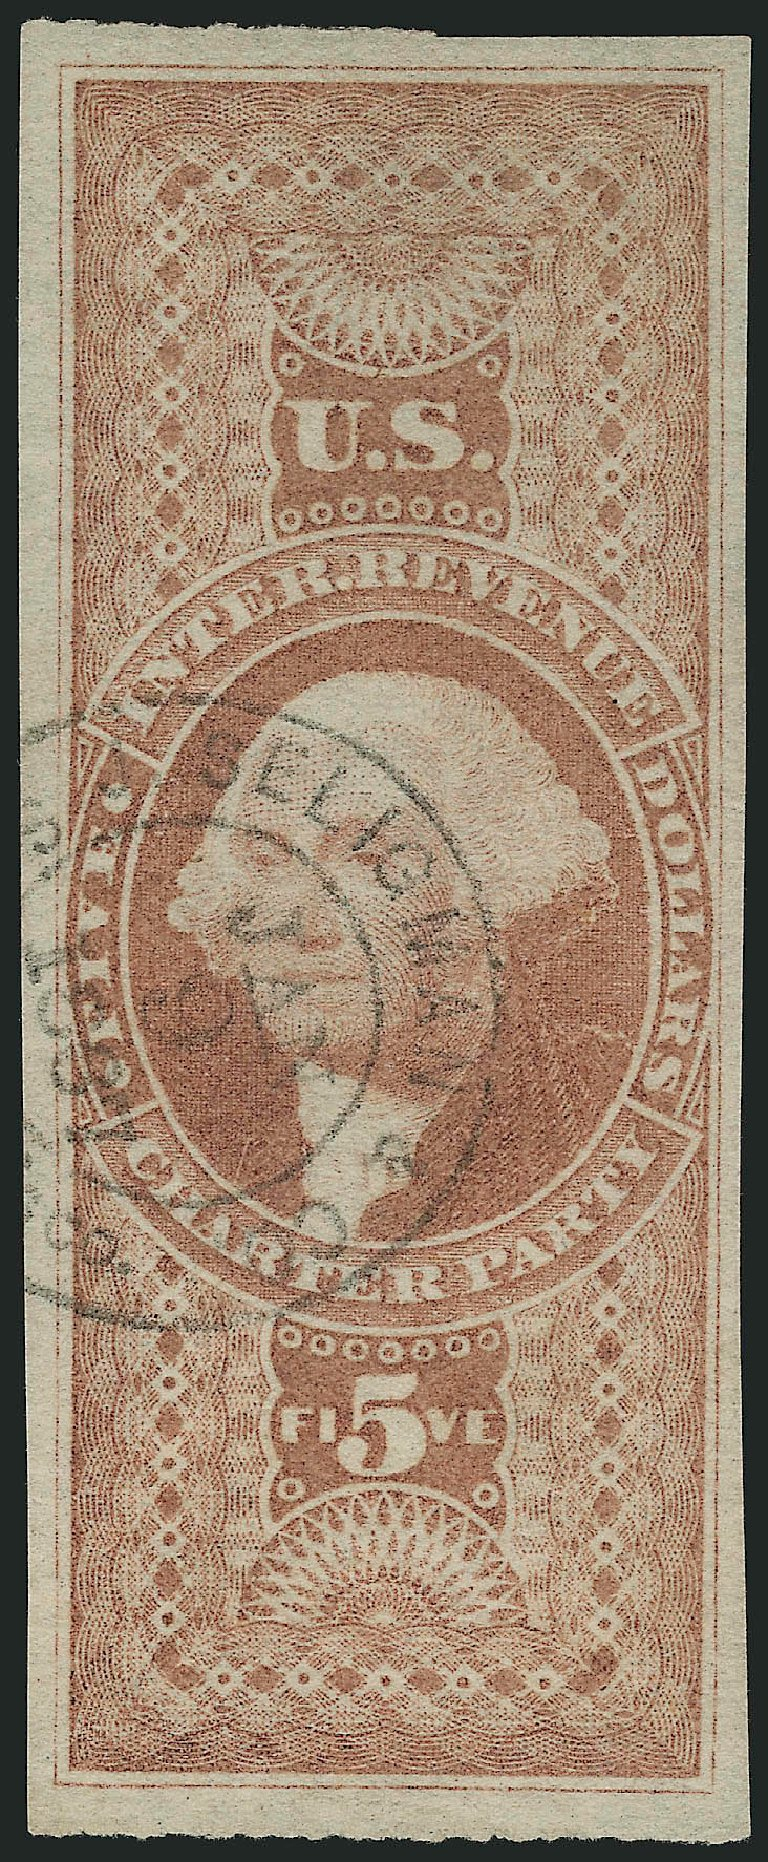 US Stamp Price Scott Cat. # R88 - 1862 US$5.00 Revenue Charter Party. Robert Siegel Auction Galleries, Jul 2013, Sale 1050, Lot 821